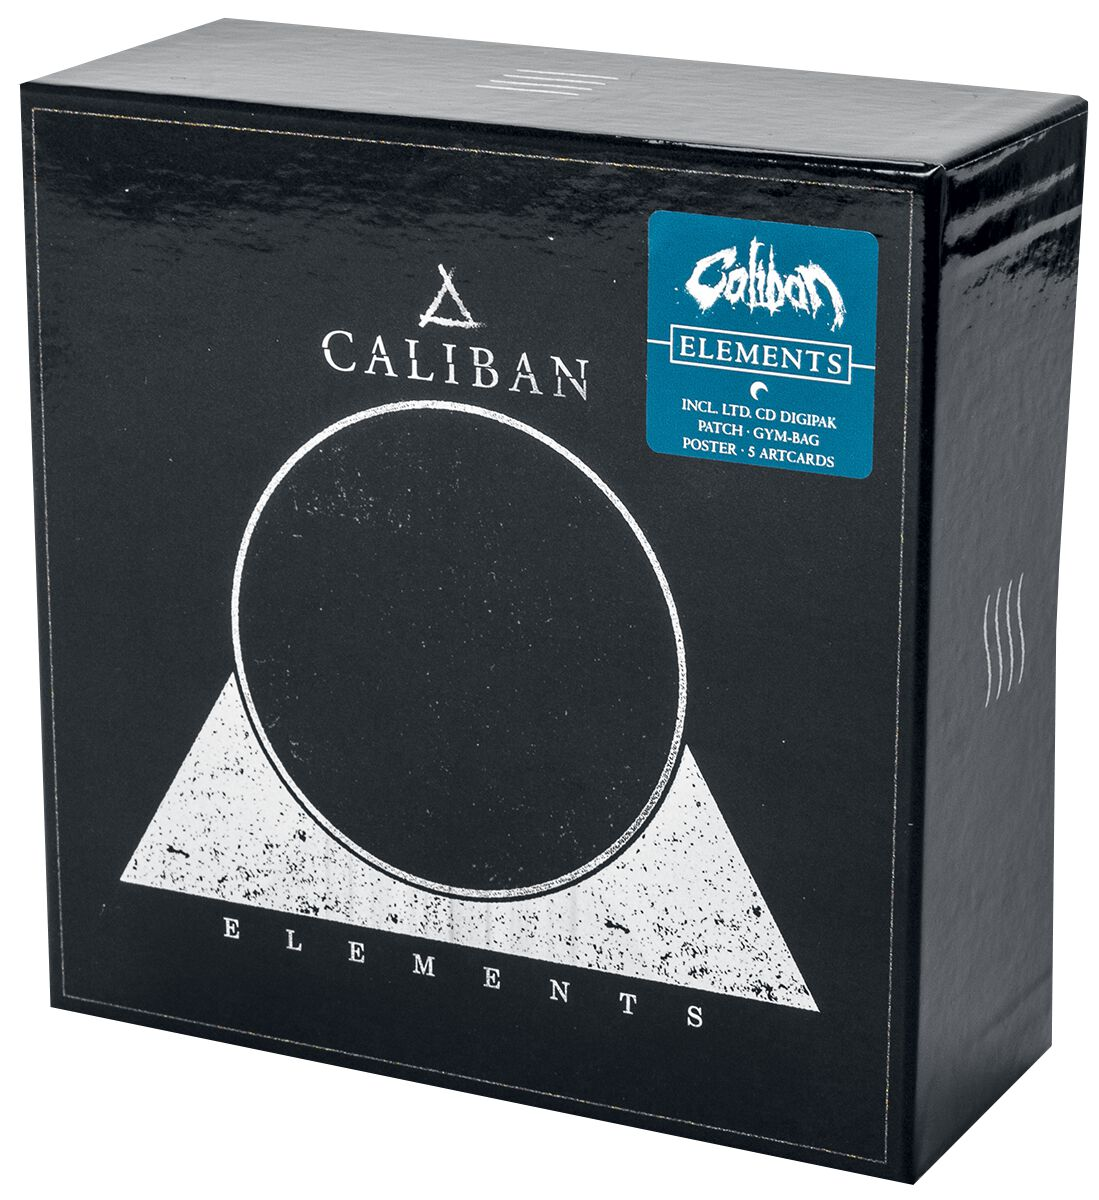 Image of Caliban Elements CD & Patch Standard